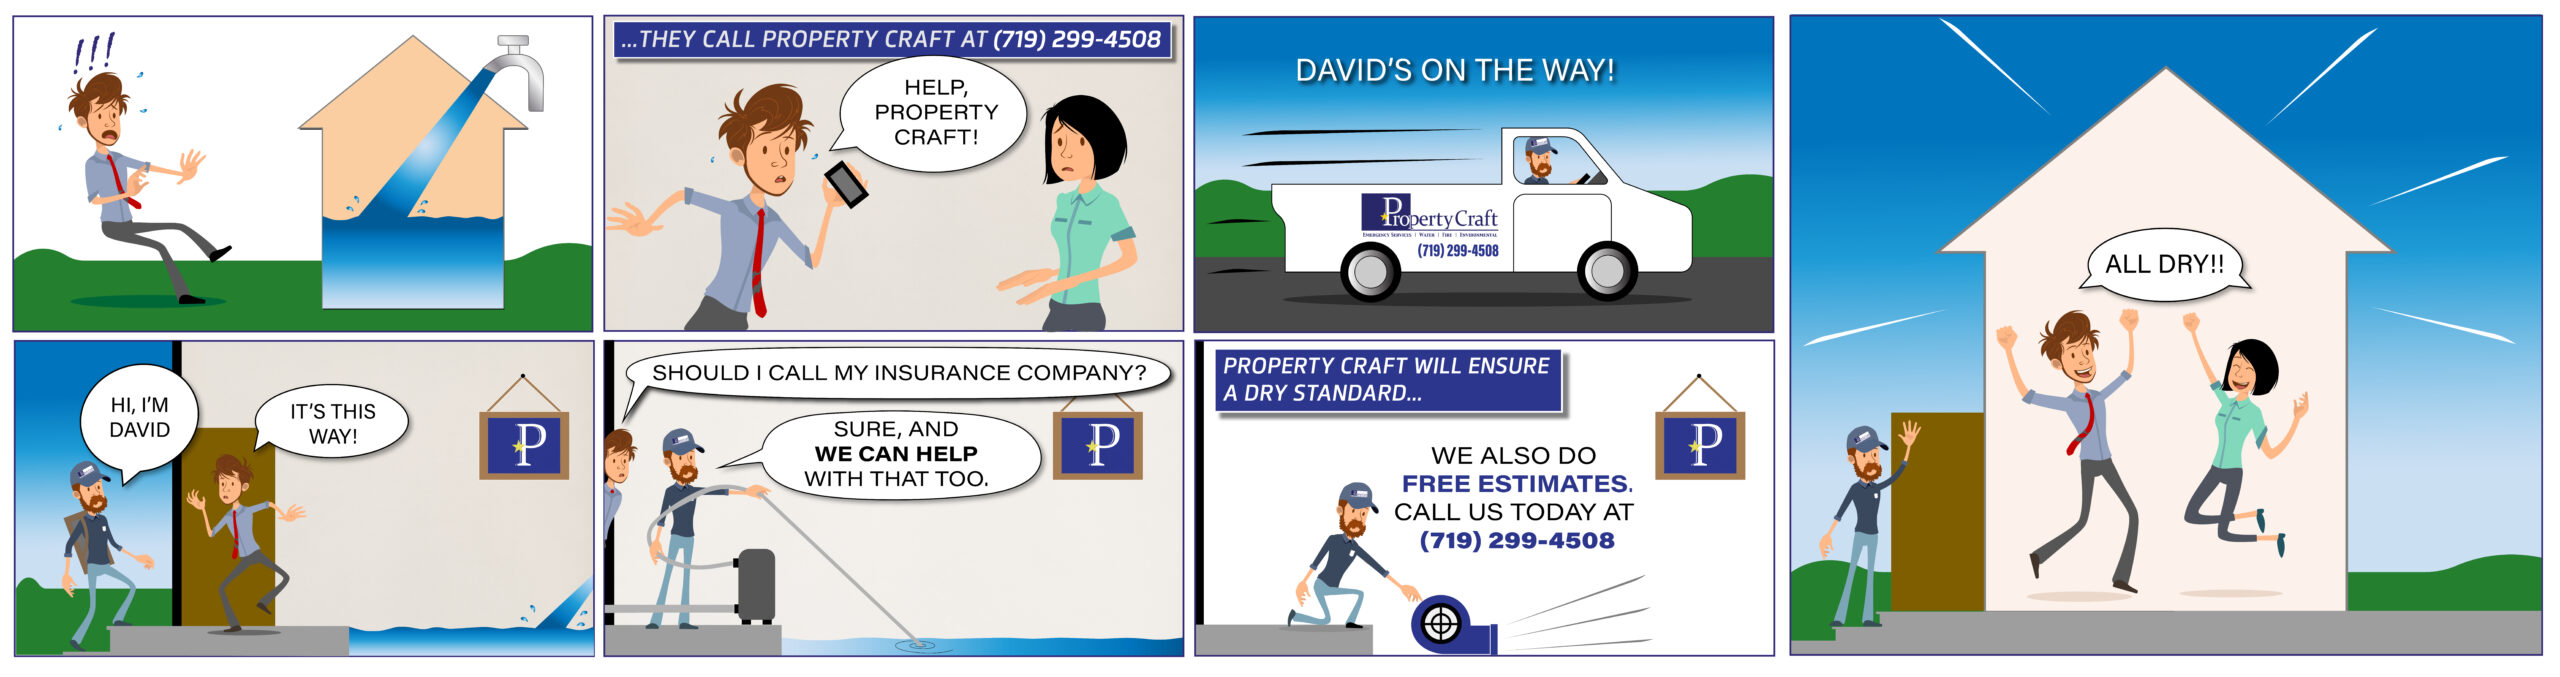 We can Help 24/7